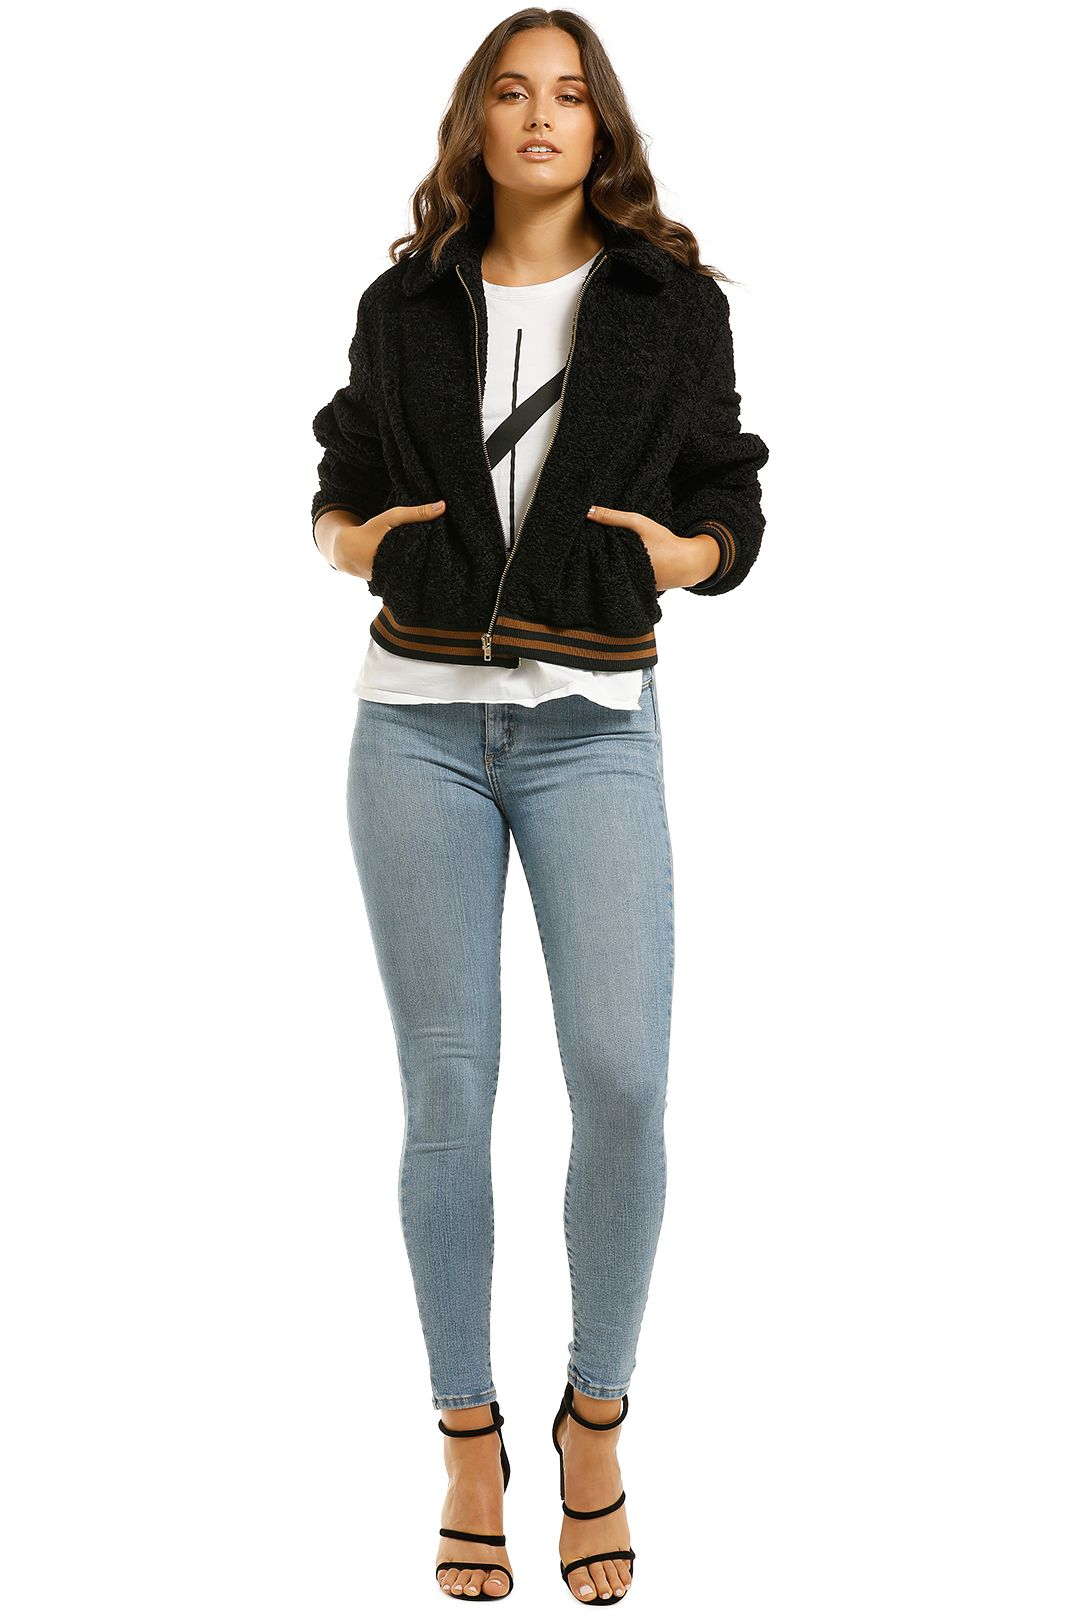 Sylvester-by-Kate-Sylvester-Lamby-Bomber-Black-Front